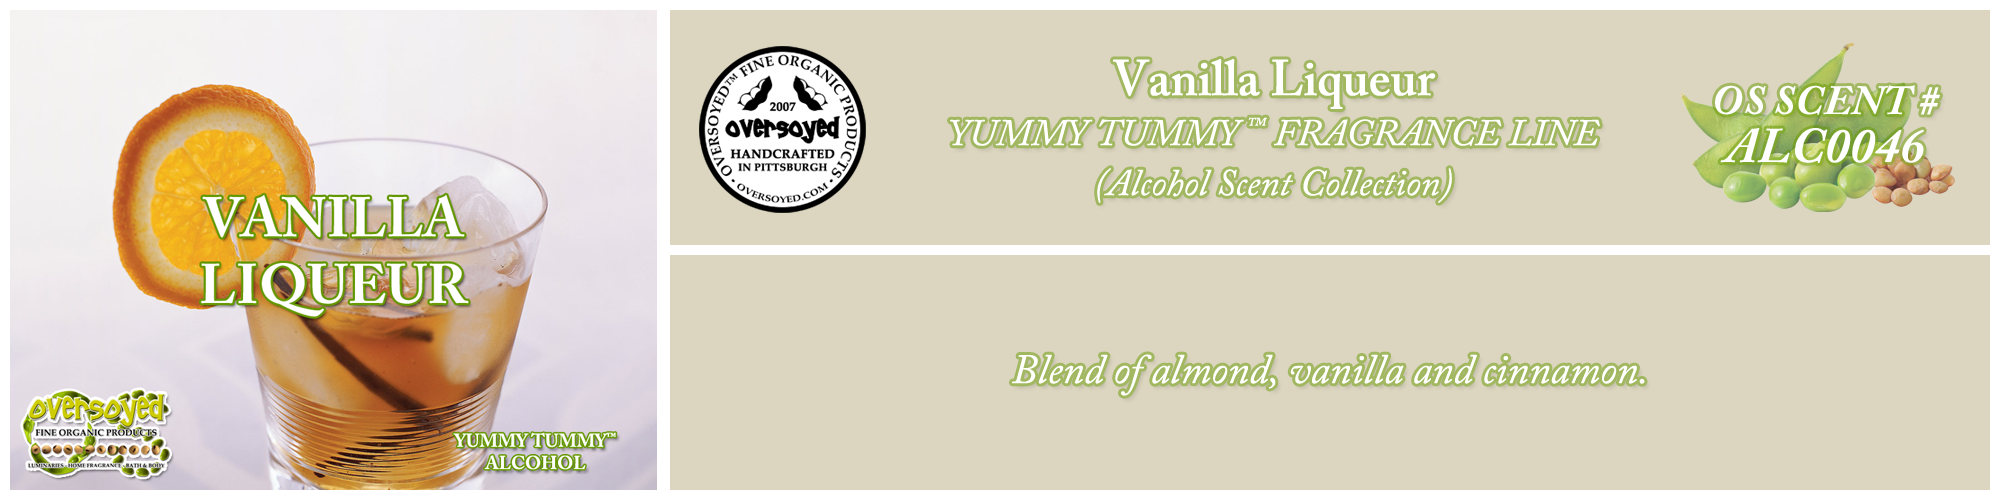 Vanilla Liqueur Handcrafted Products Collection